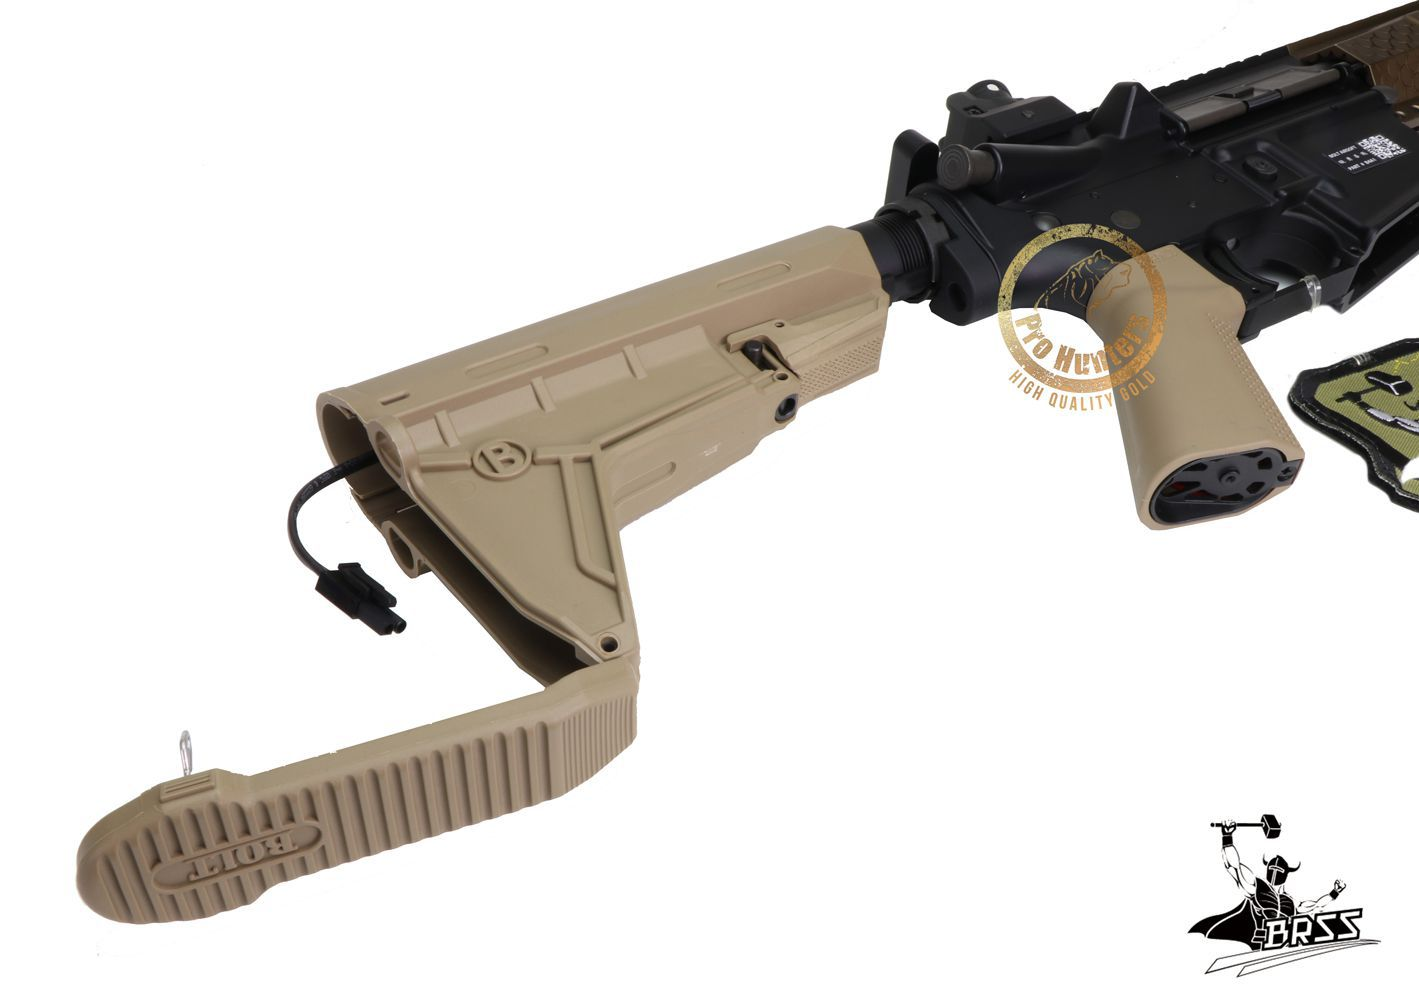 Rifle Airsoft M4 BOLT B4 KEYMOD COBRA - TAN Full Metal - Blowback & Recoil System